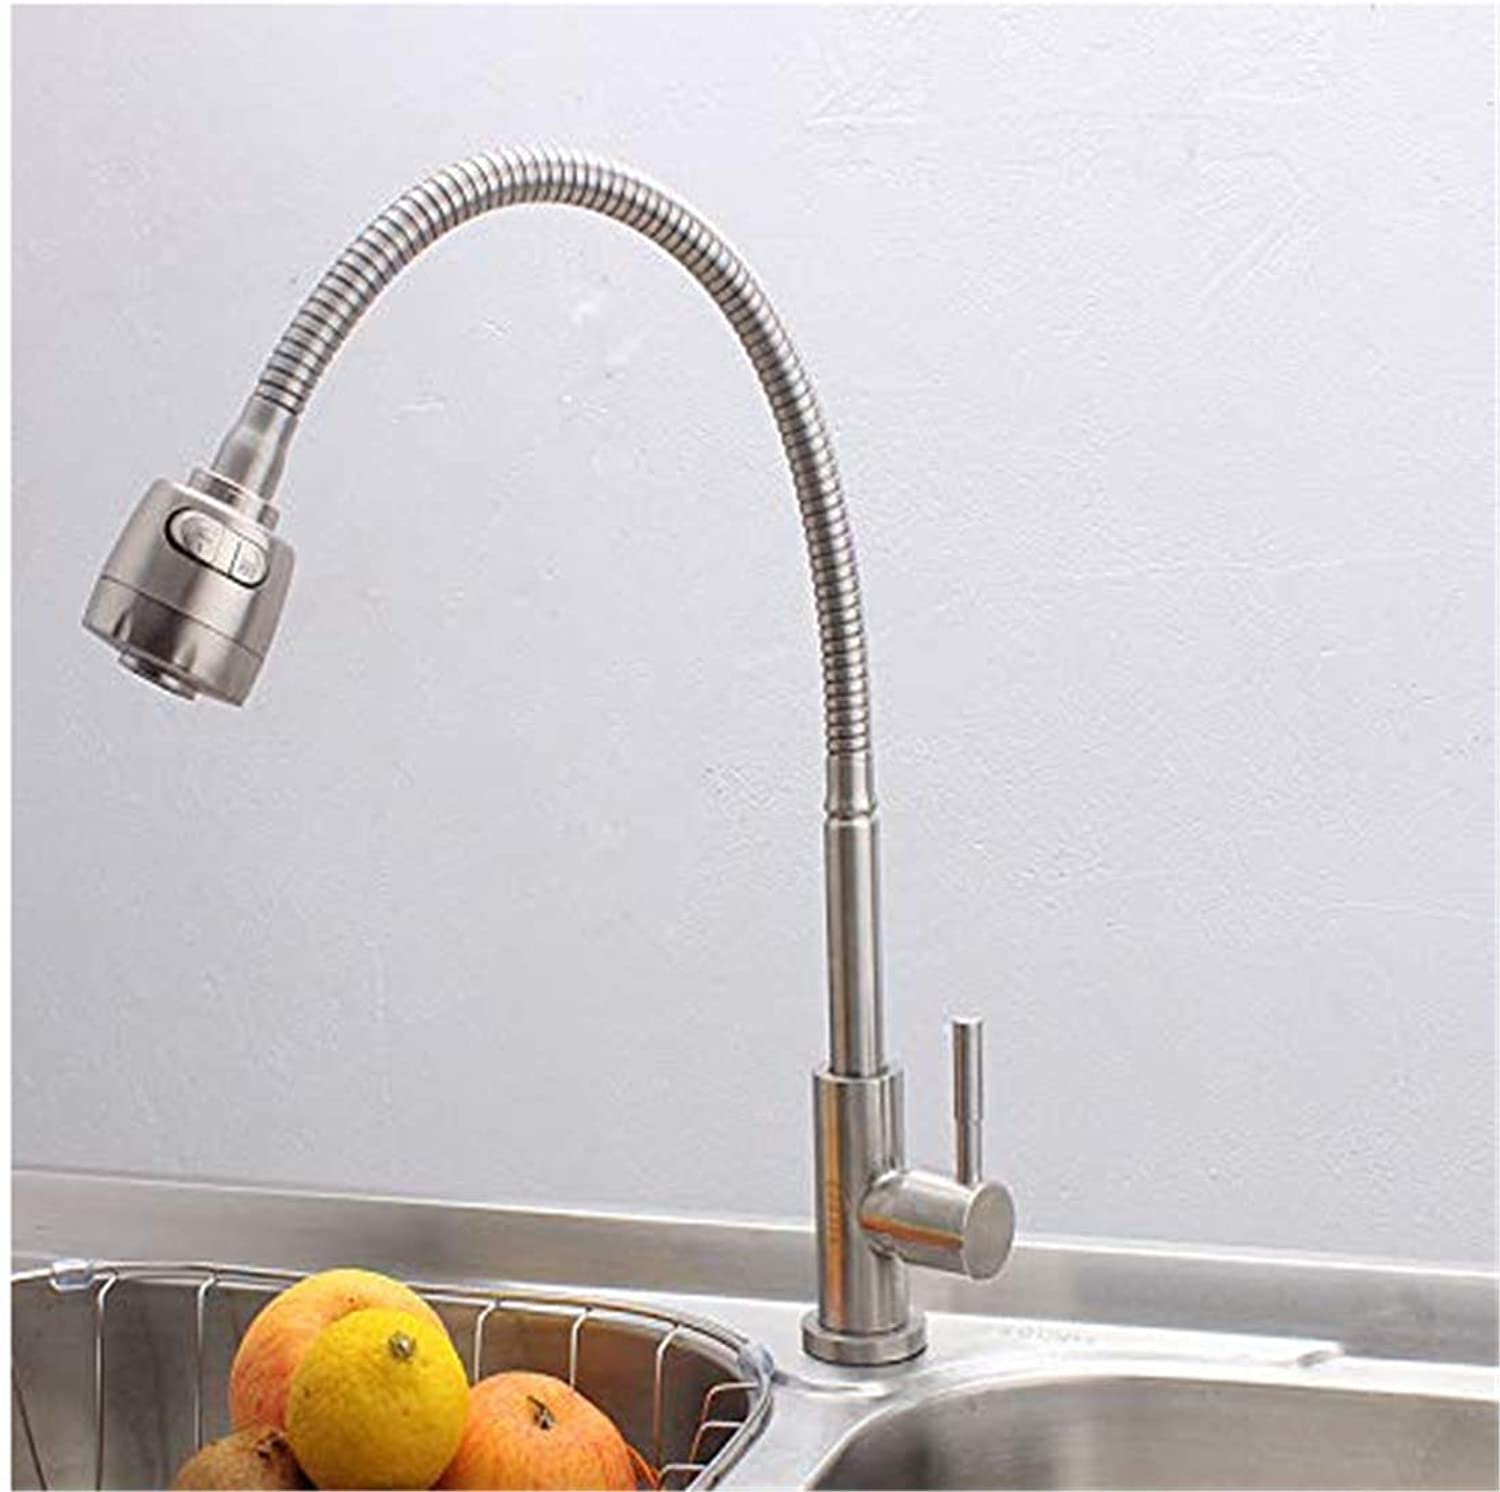 Modern Double Basin Sink Hot and Cold Water Faucet56Qsgv2K